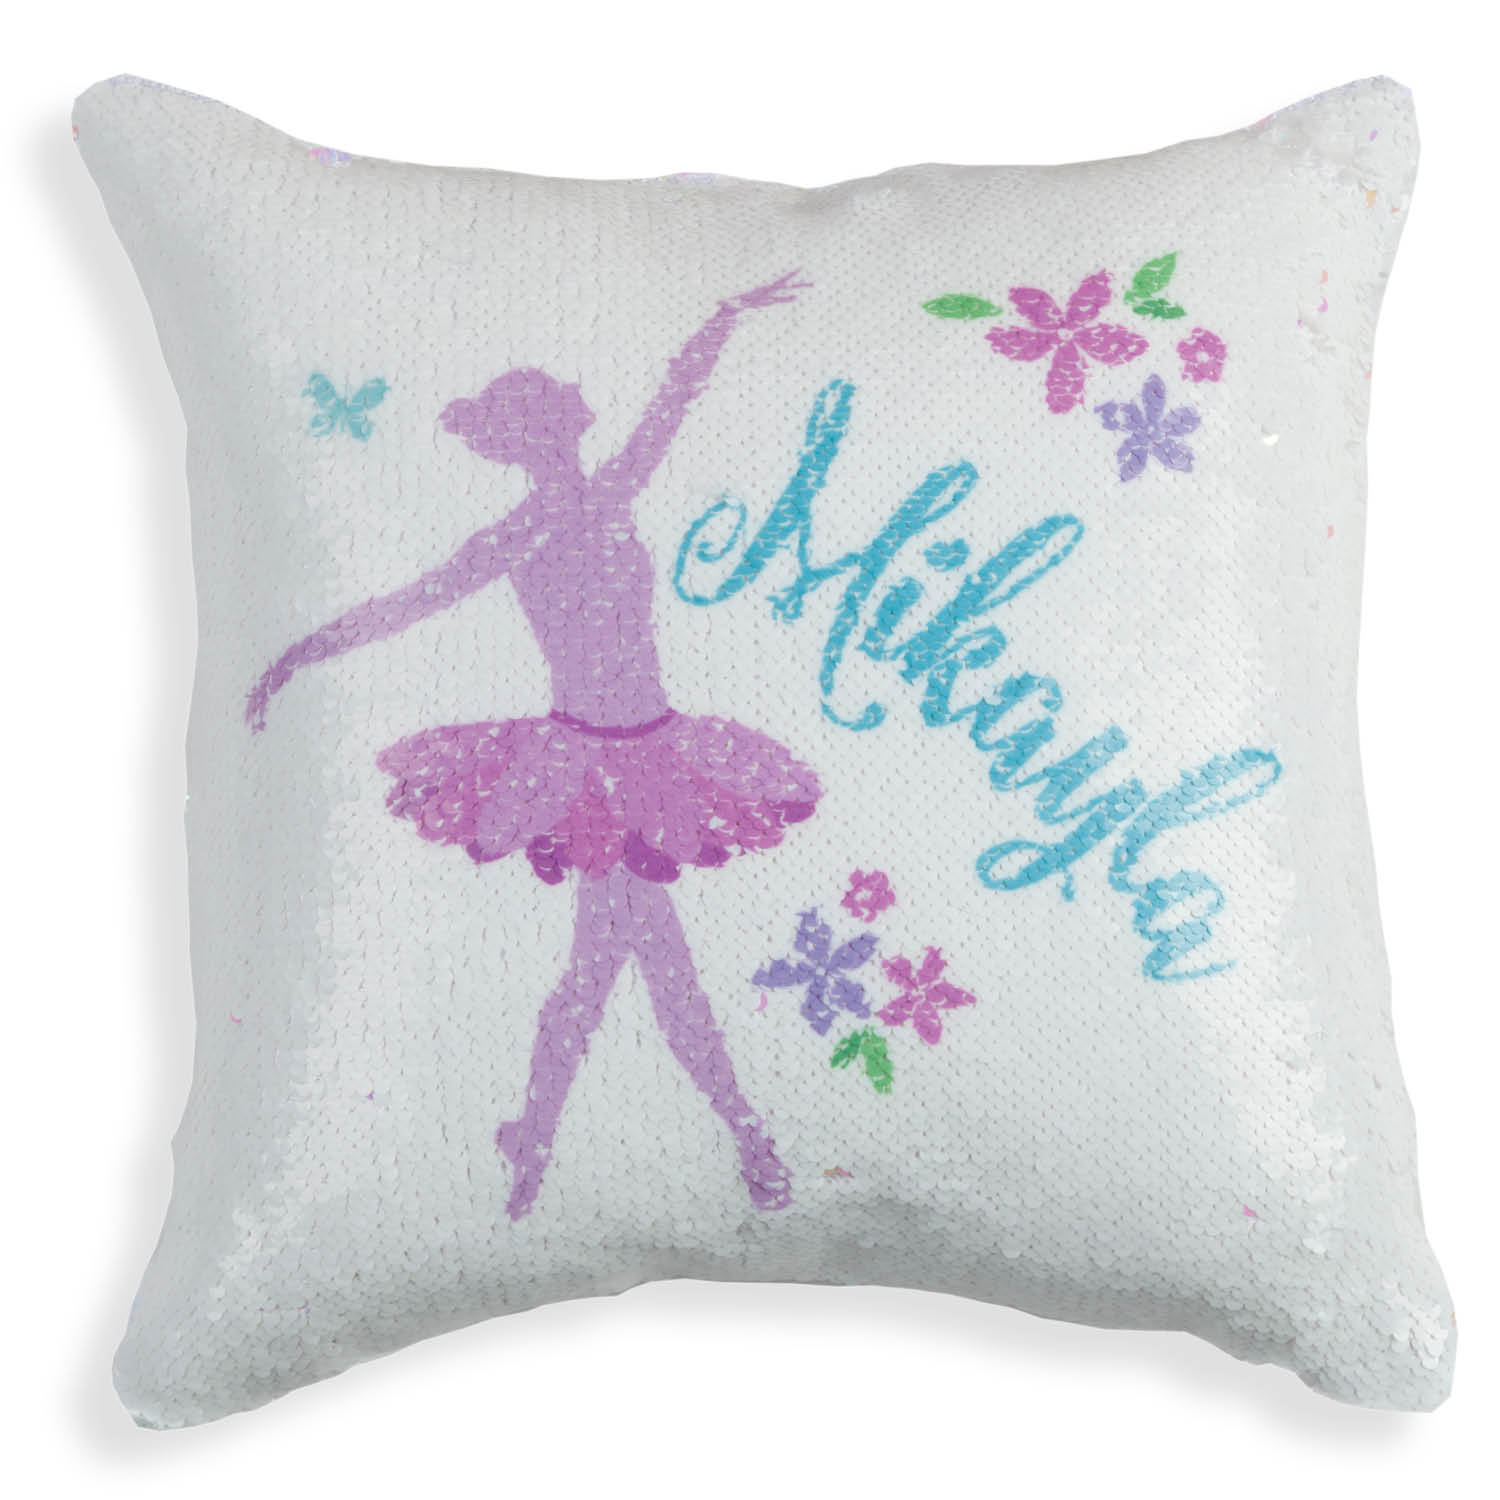 Personalized Dance Reversible Sequin Pillow - 16x16